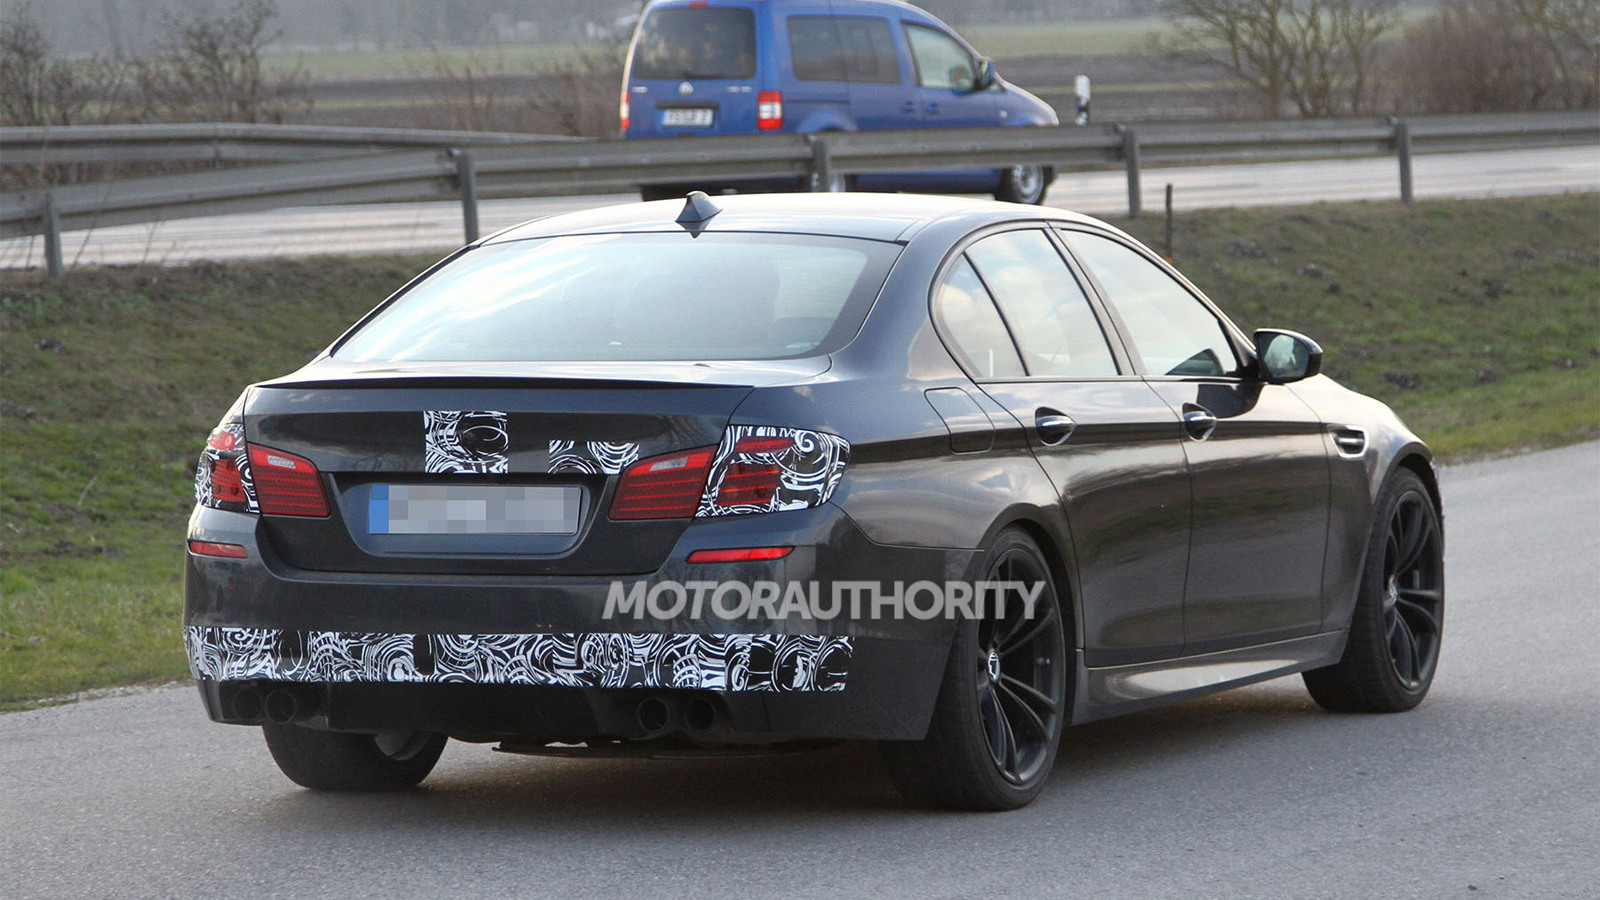 2014 BMW M5 facelift spy shots